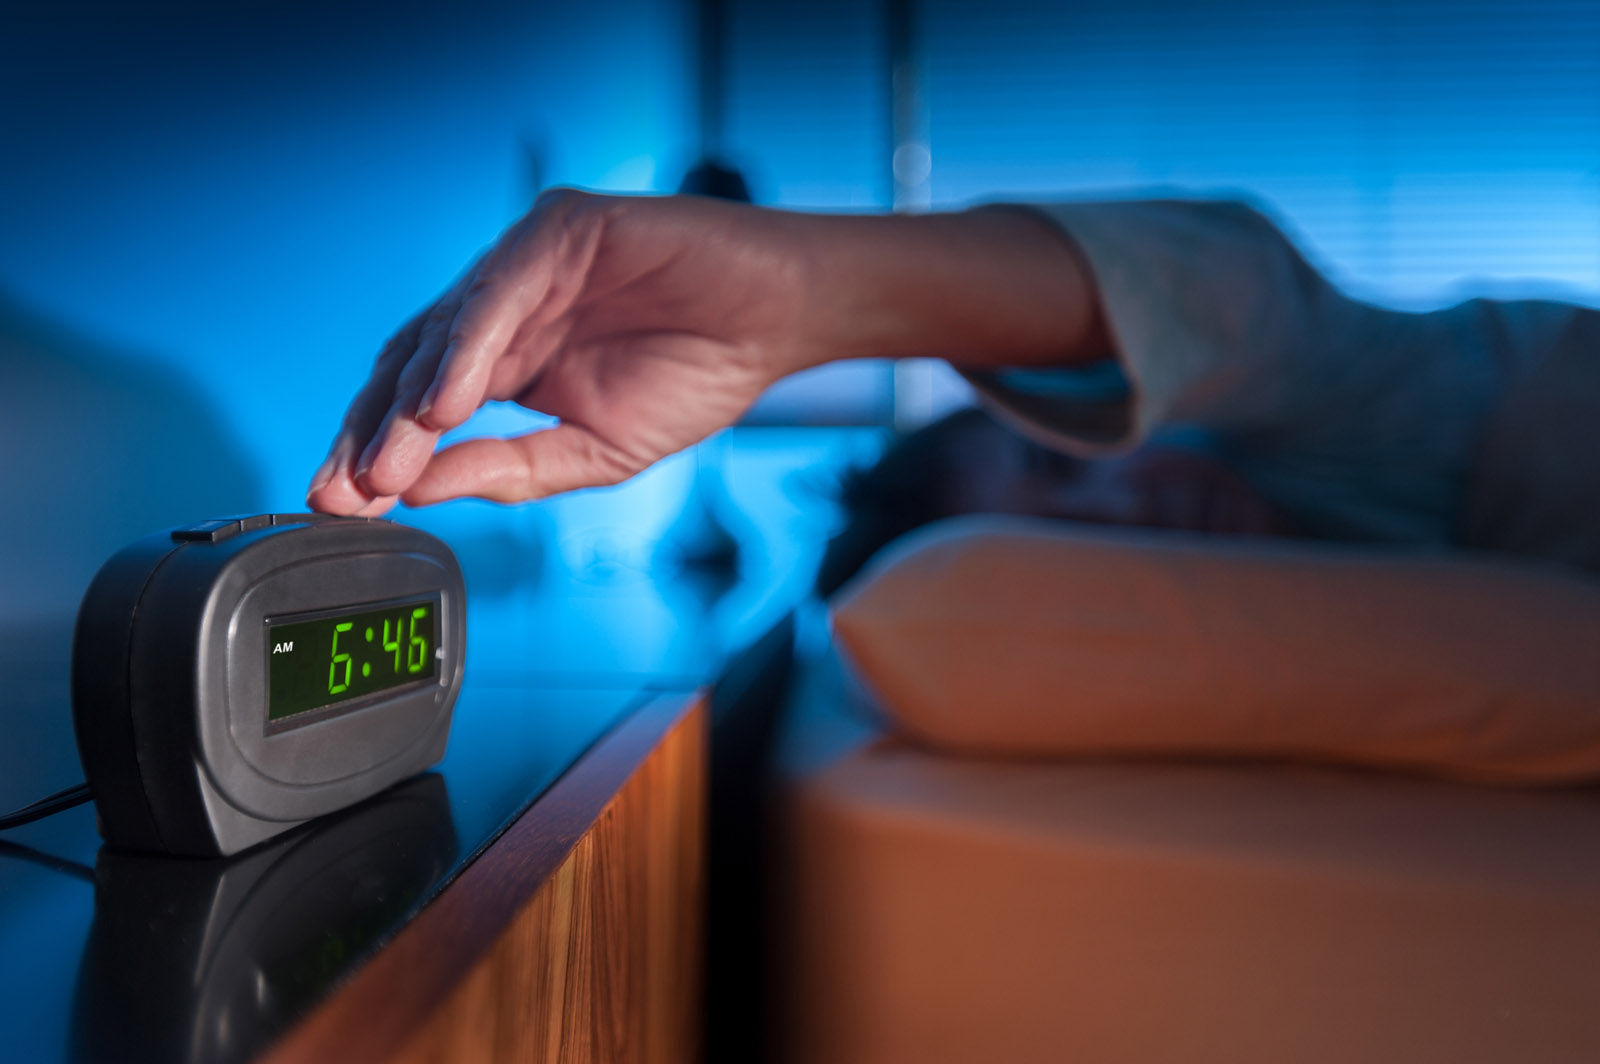 Woman pressing snooze button on early morning digital alarm clock (Thinkstock)